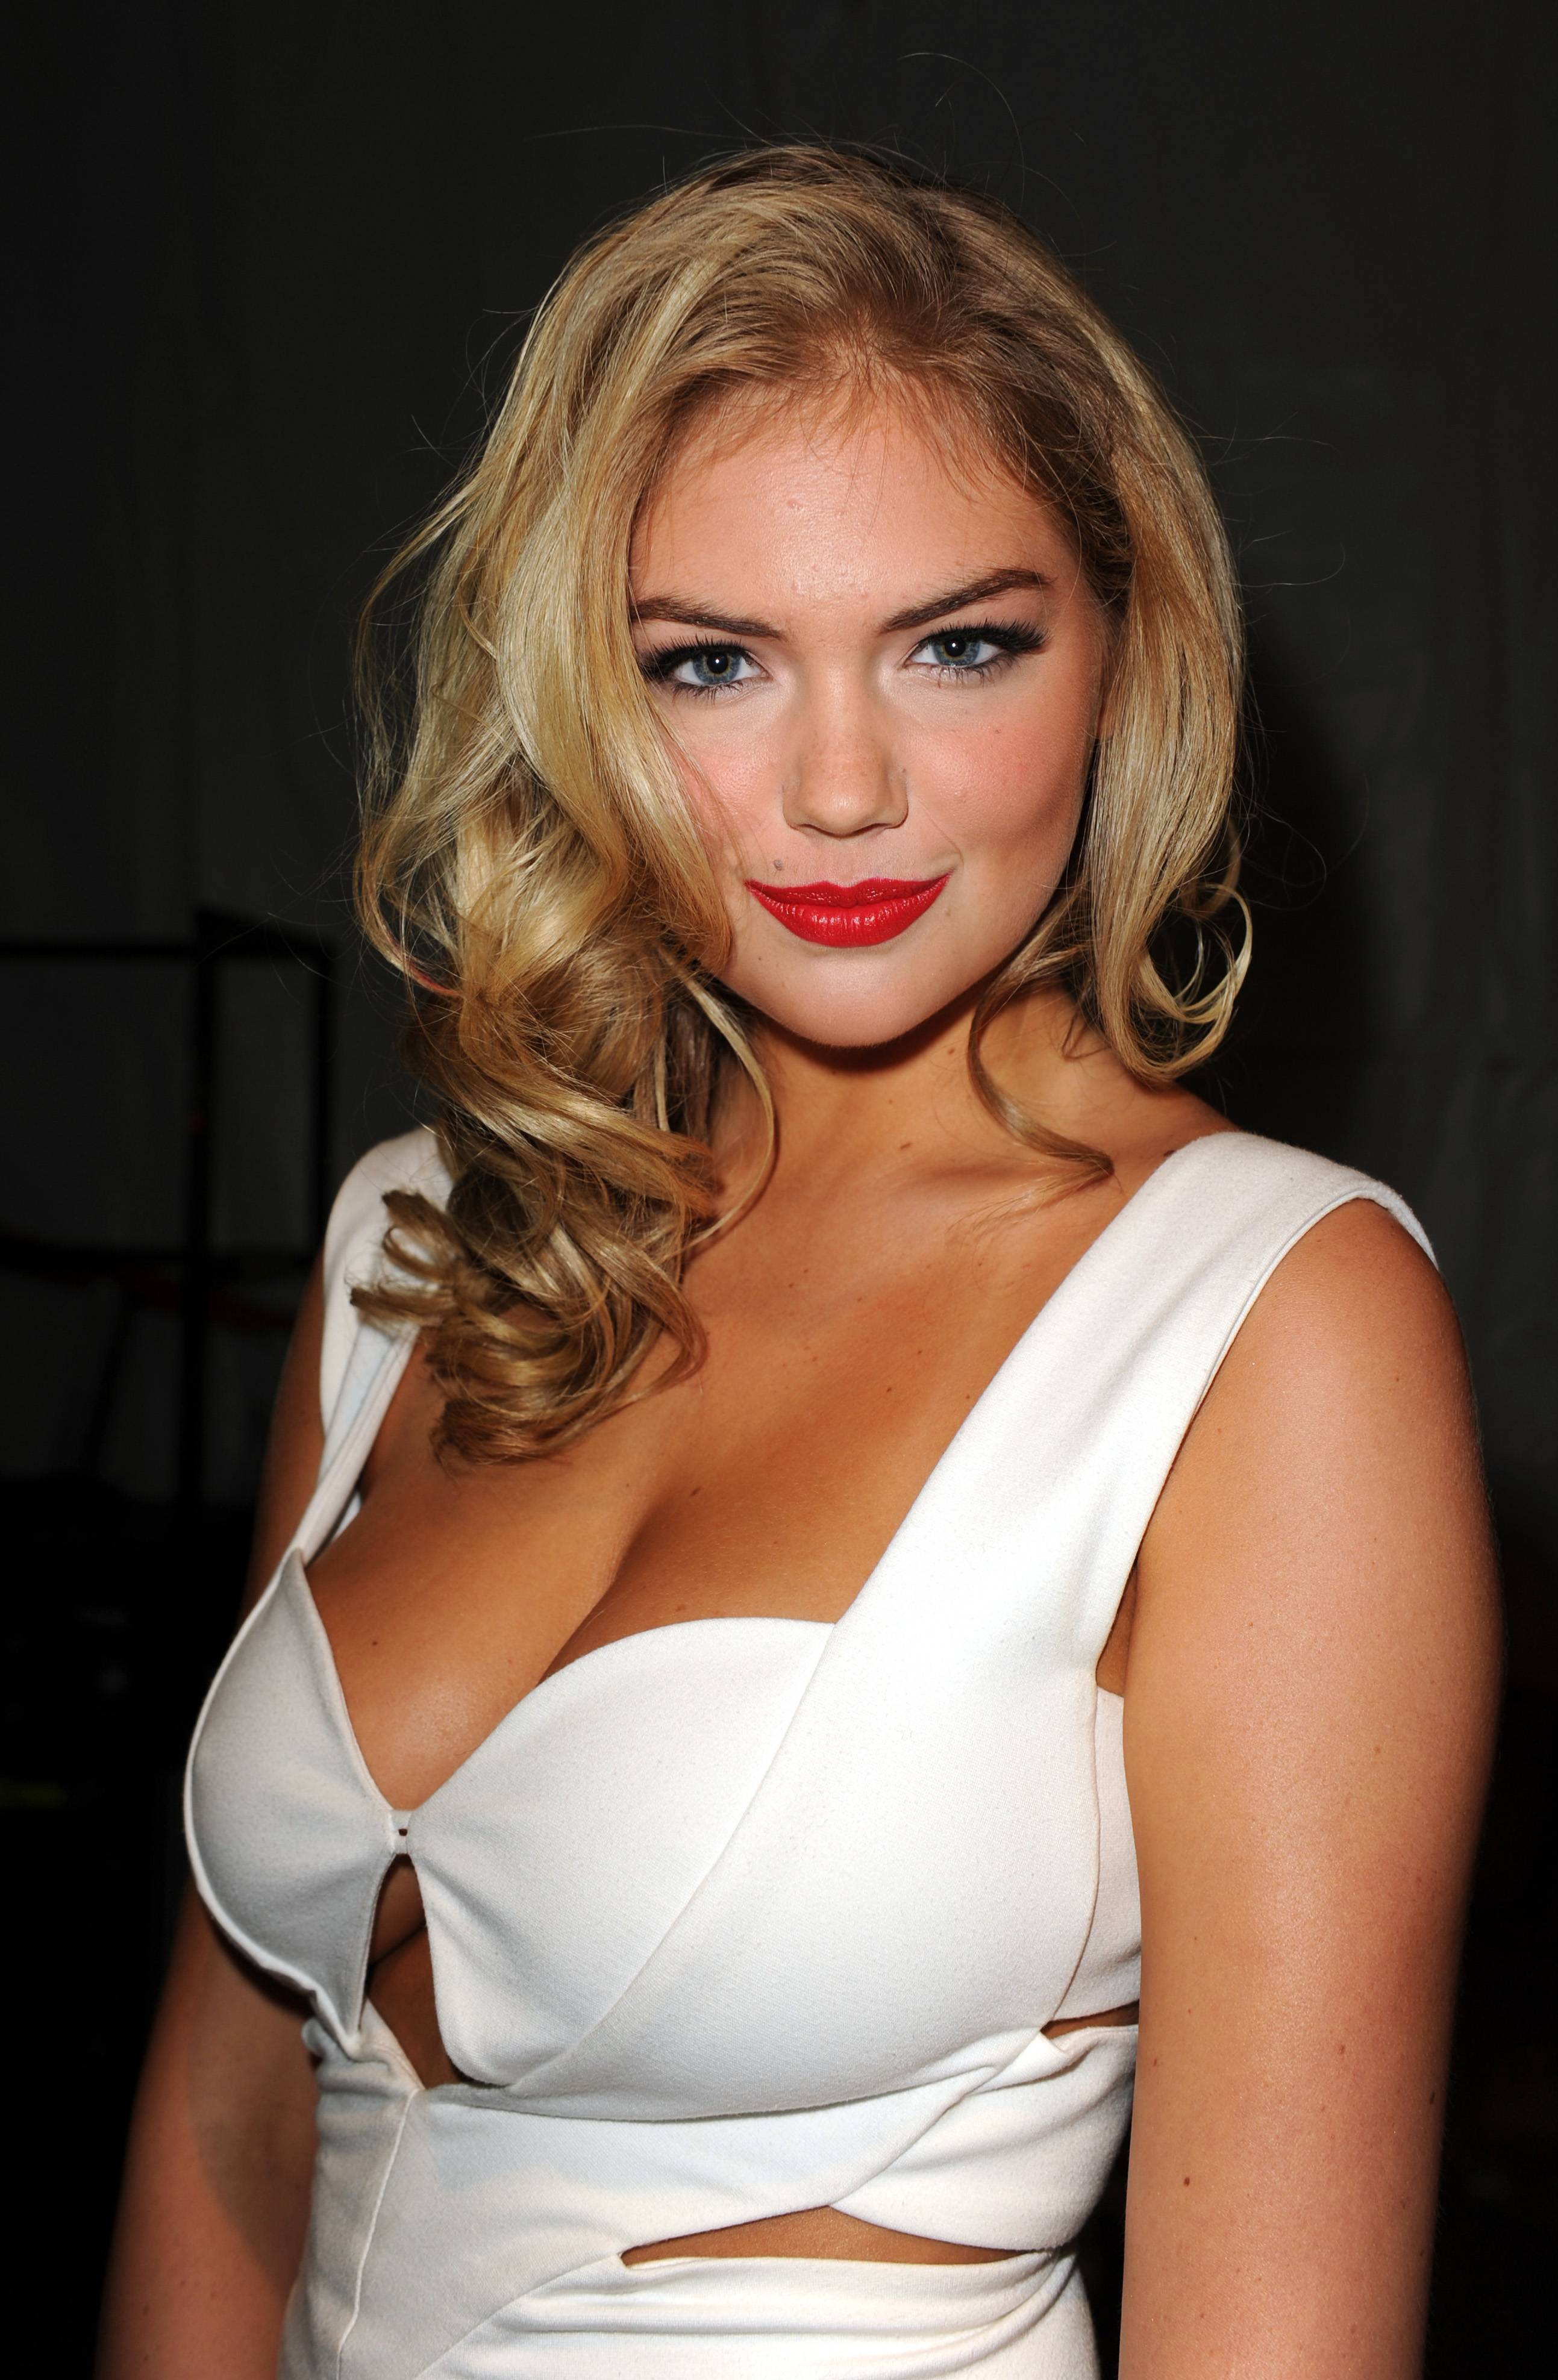 Kate Upton For mobile